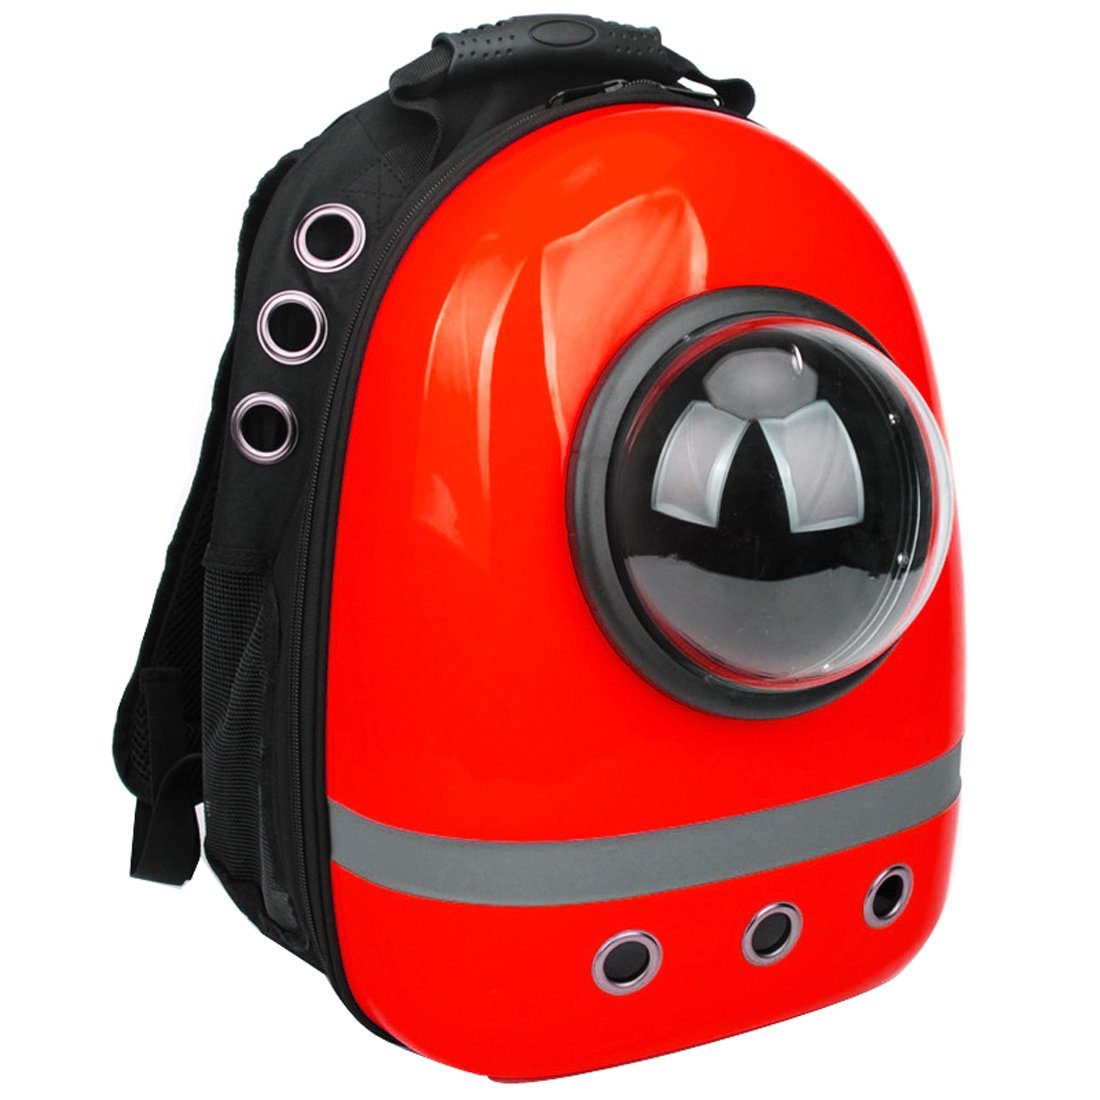 Bubble Backpack Pet Carriers Innovative Traveler for Cats Dogs Pet Portable Carrier Space Capsule Backpack Gaorui E-Commerce Co. Ltd CWTKBBCSX-B